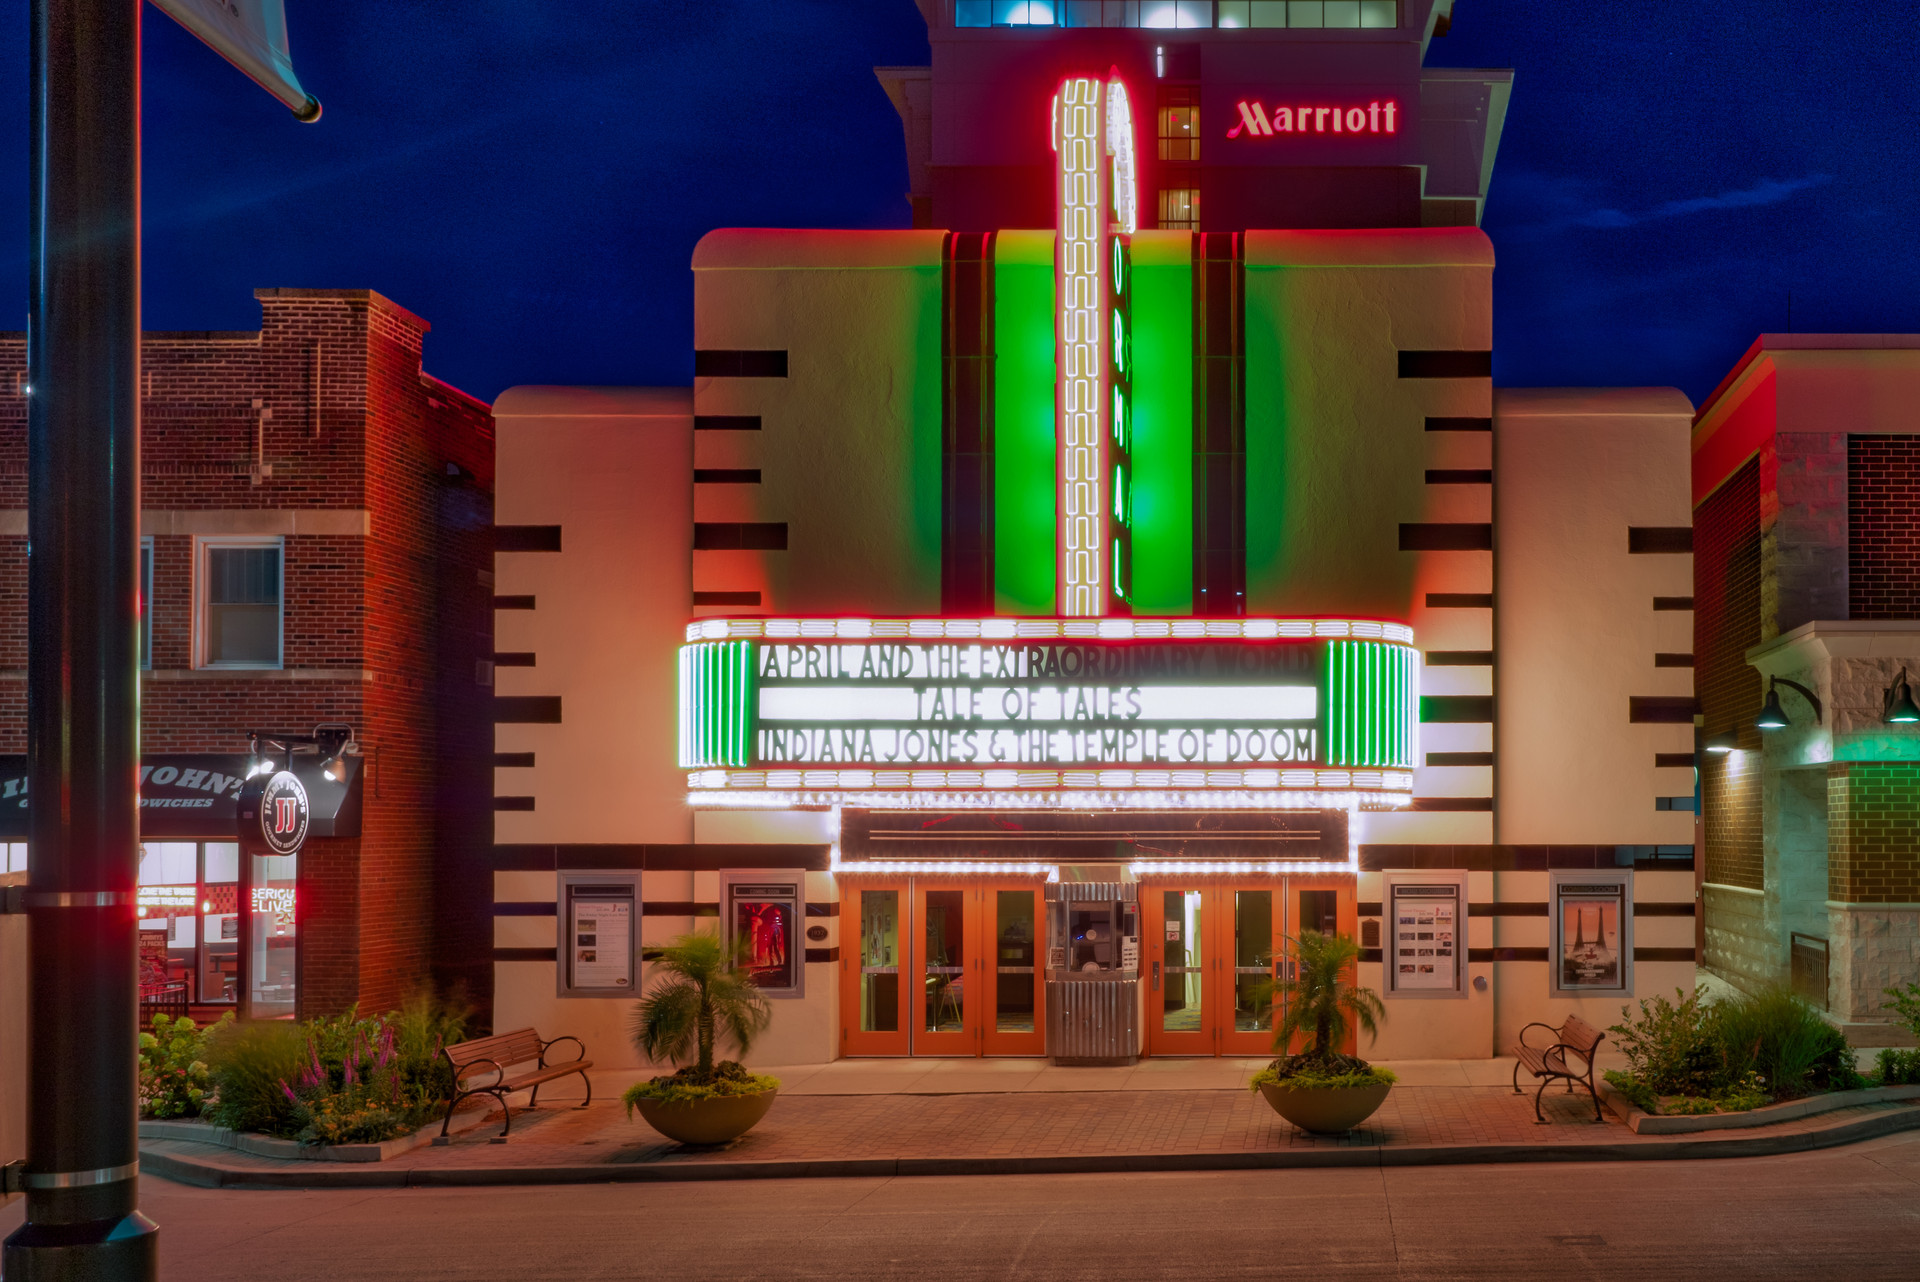 The Normal Theatre in Normal Illinois